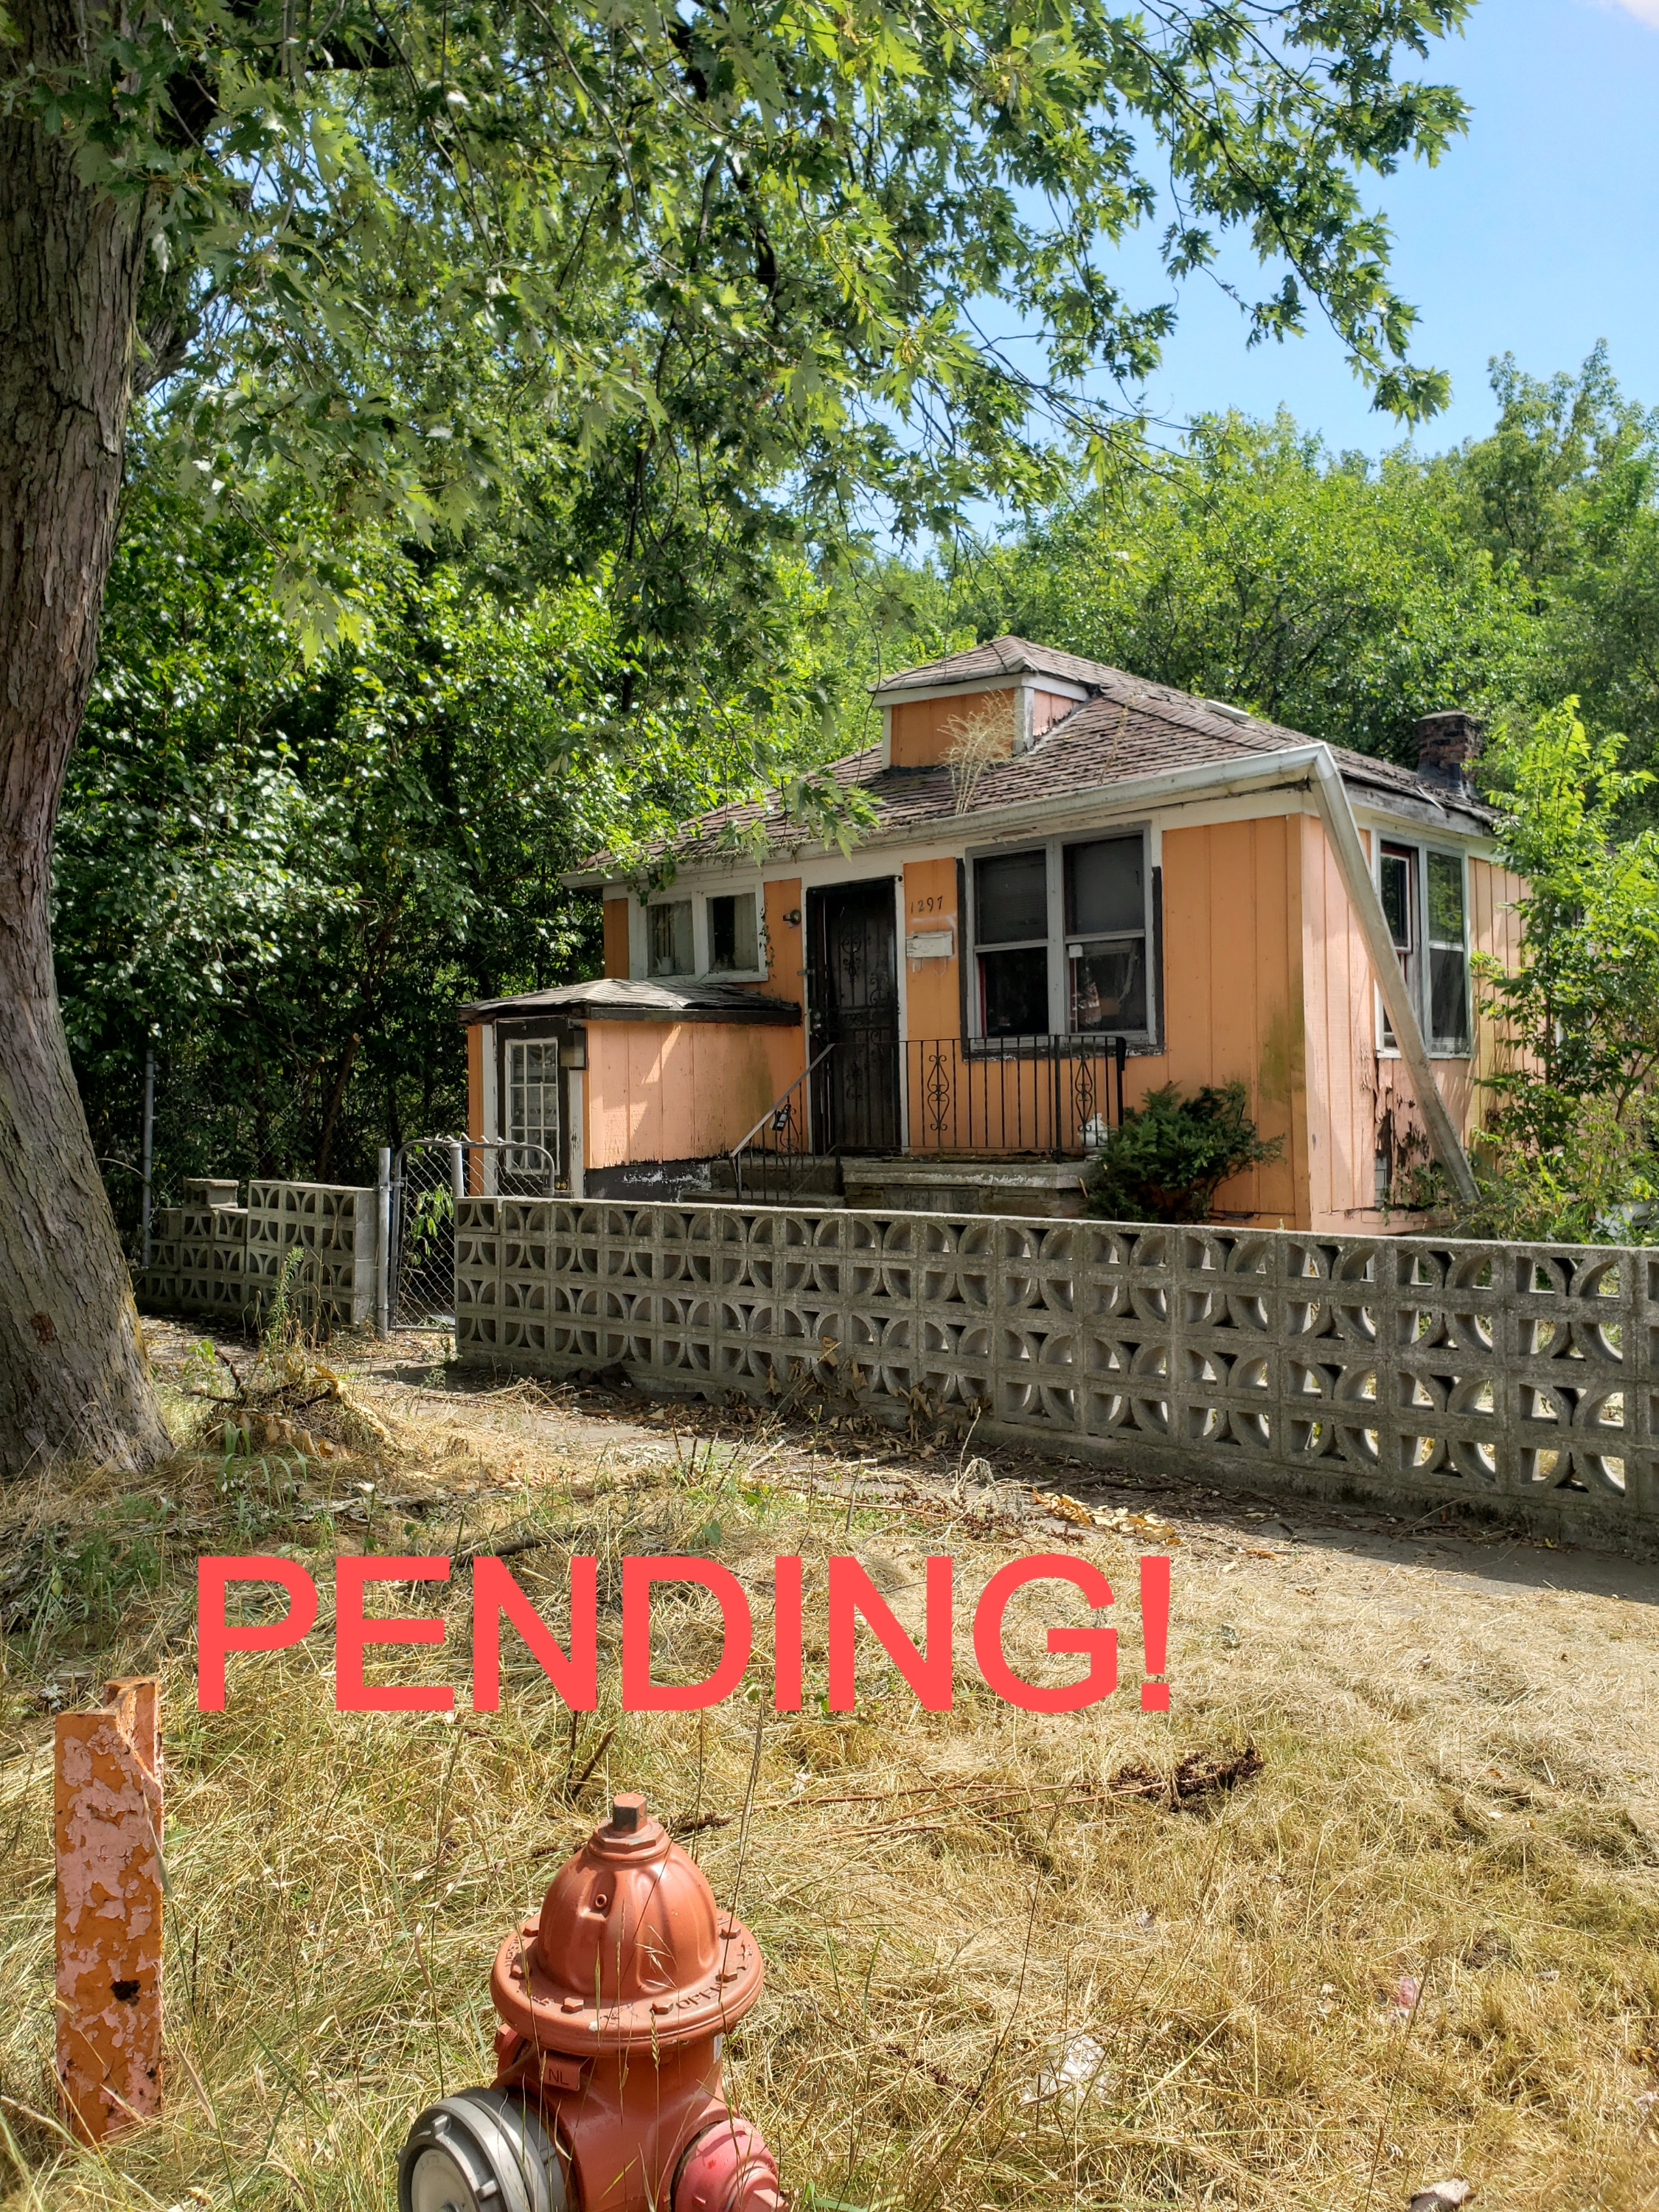 PENDING! 1297 W. 17th Ave.